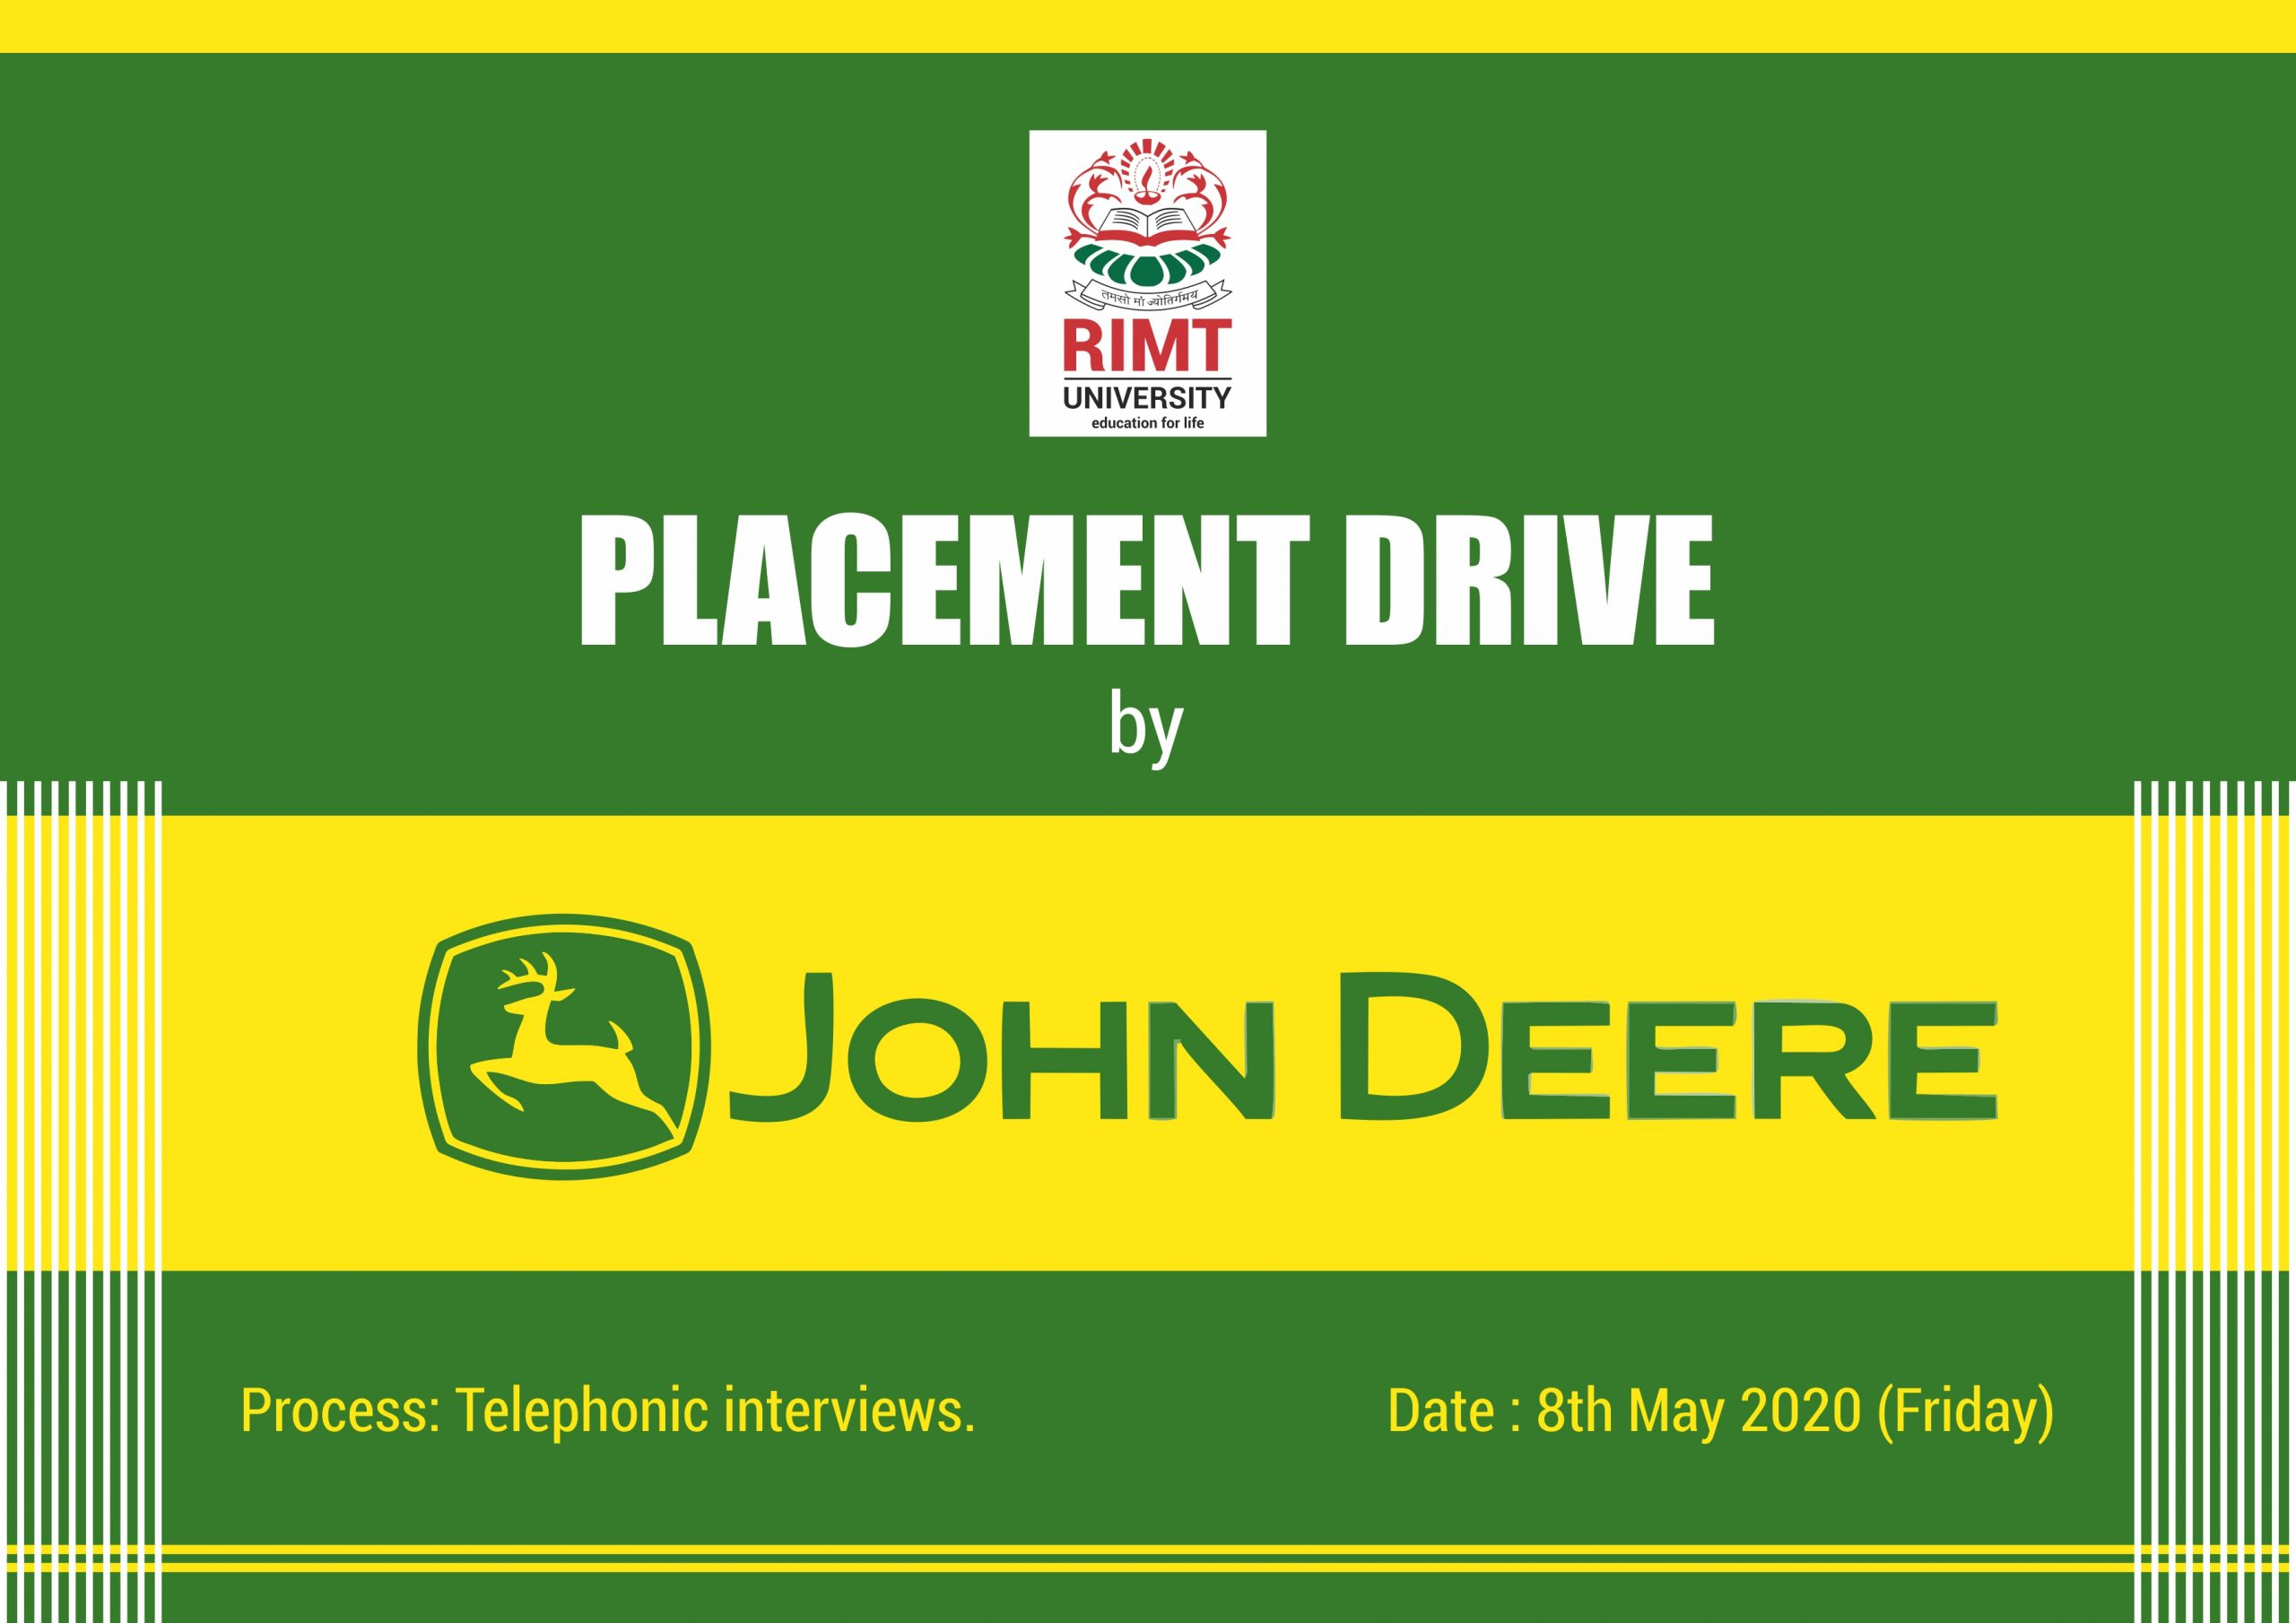 RIMT Placement drive by johndeer